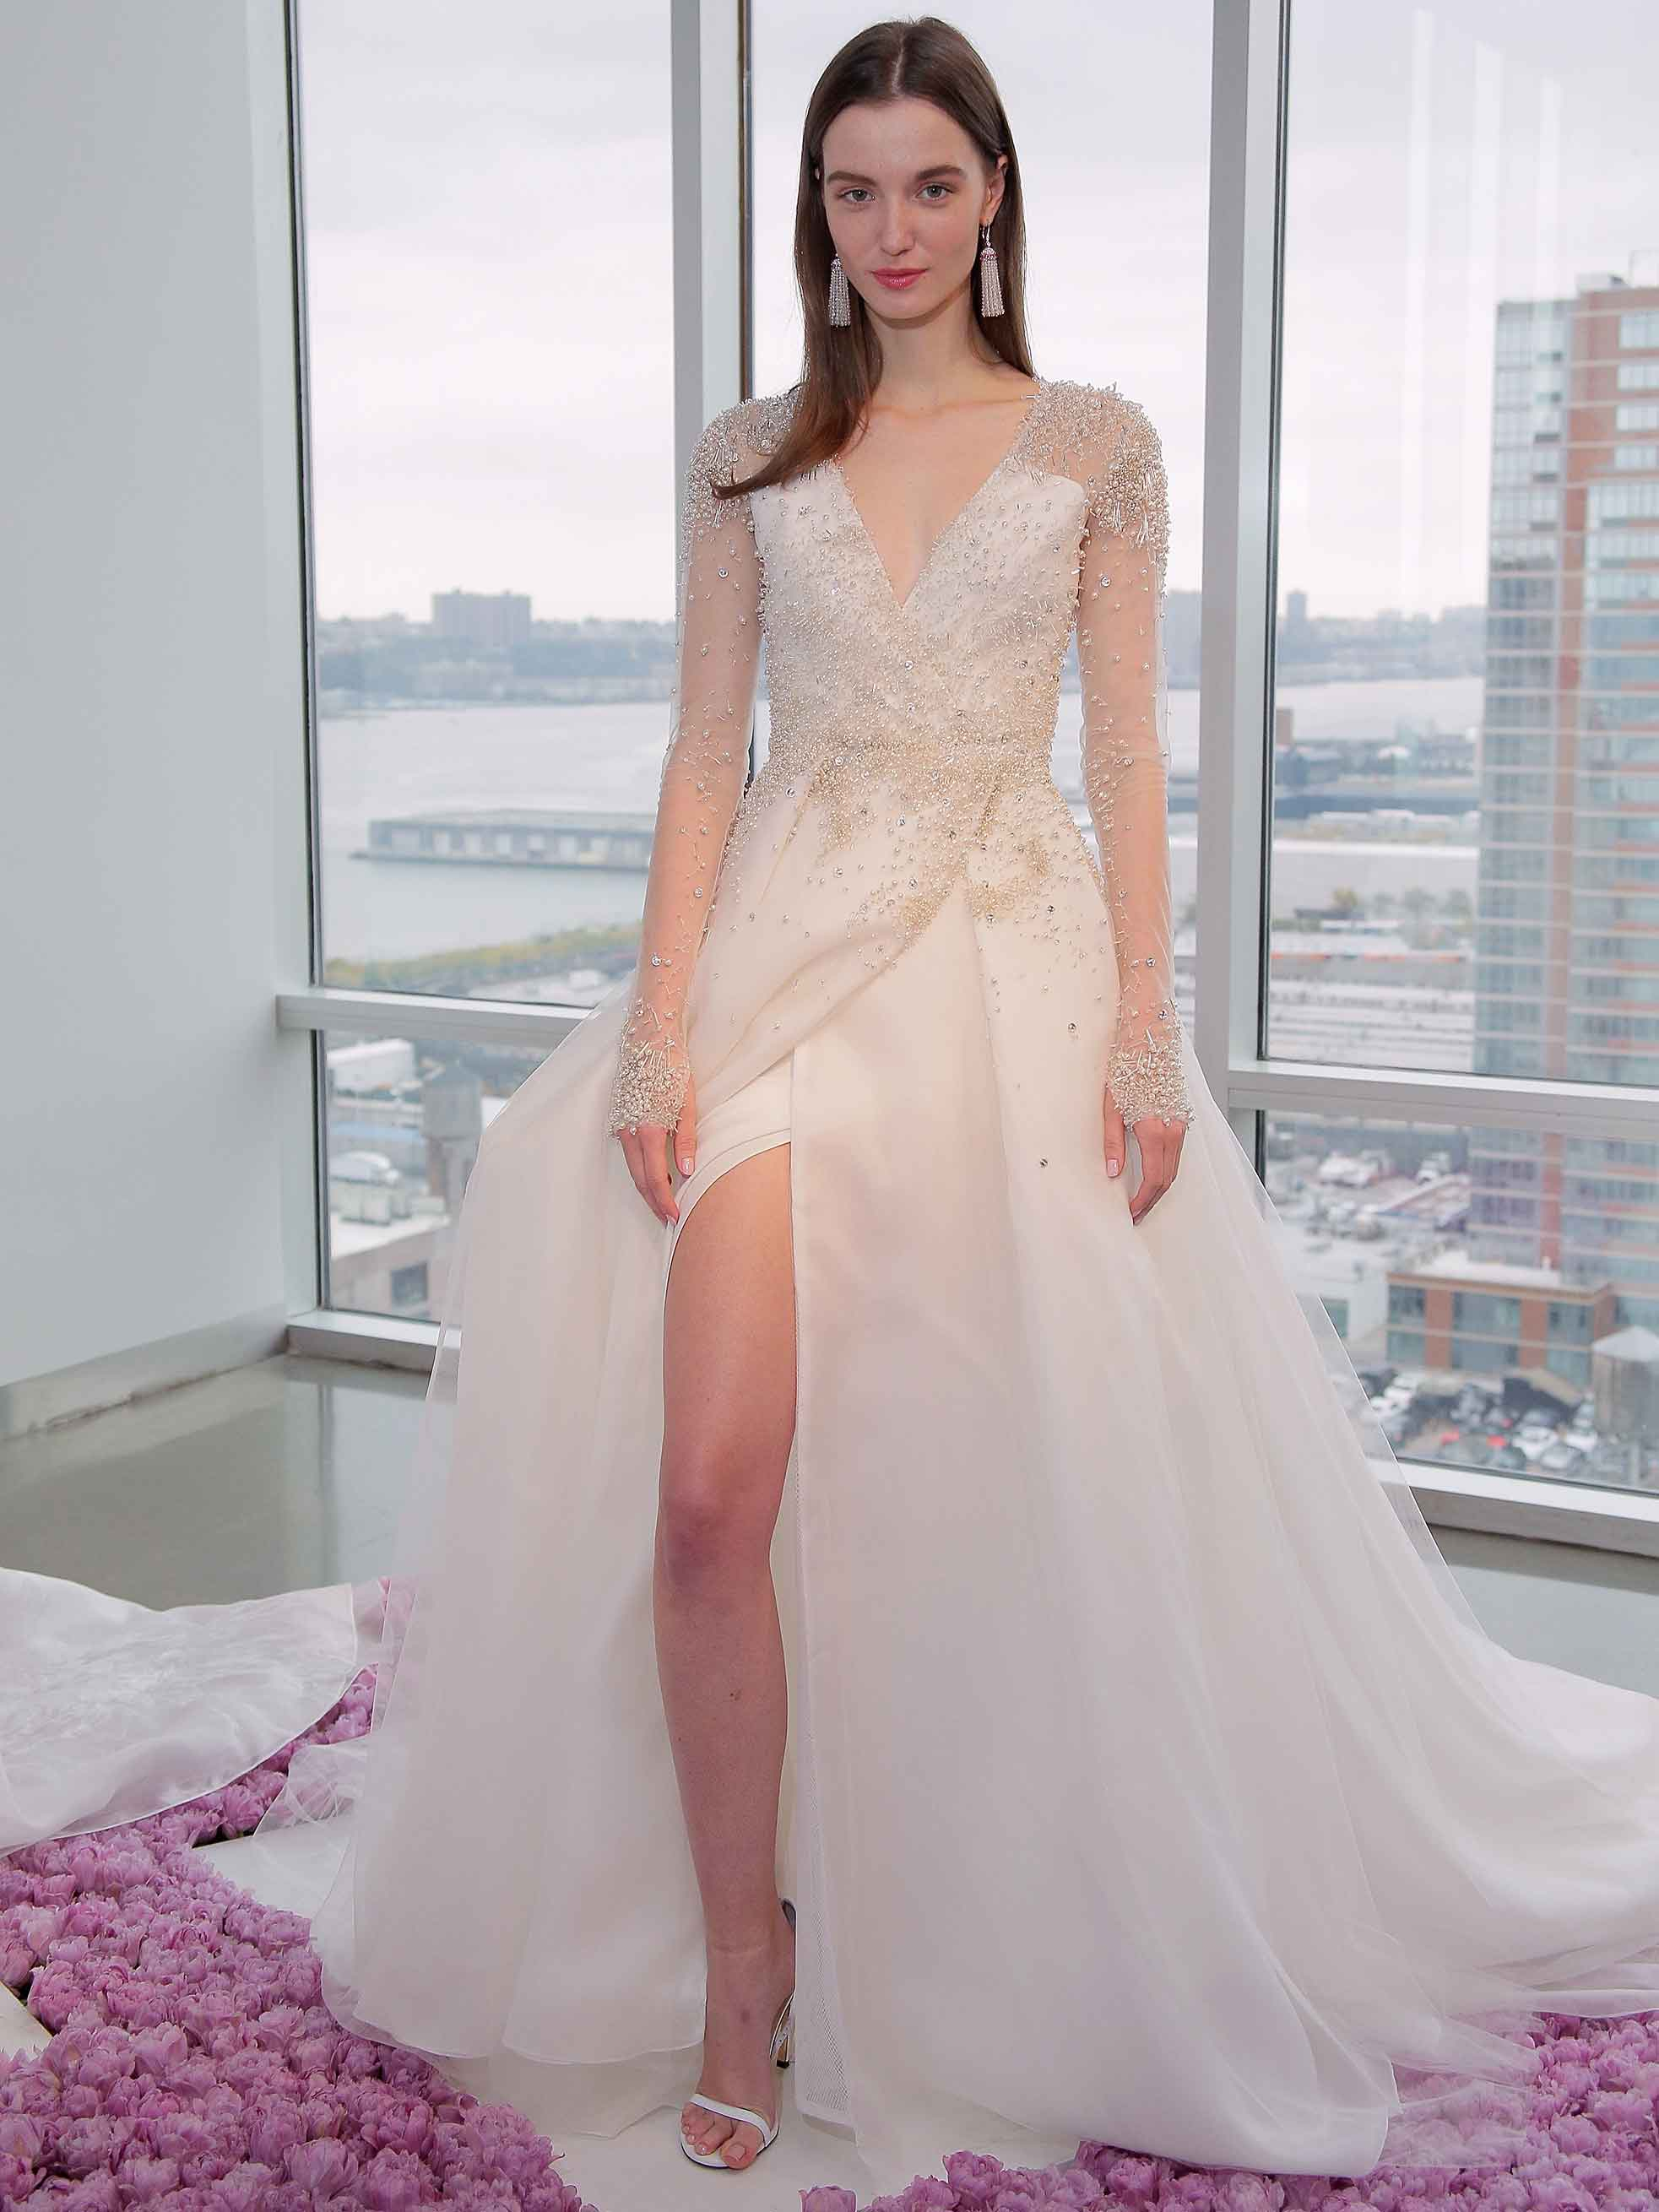 The best wedding dresses from New York Bridal week | The Independent